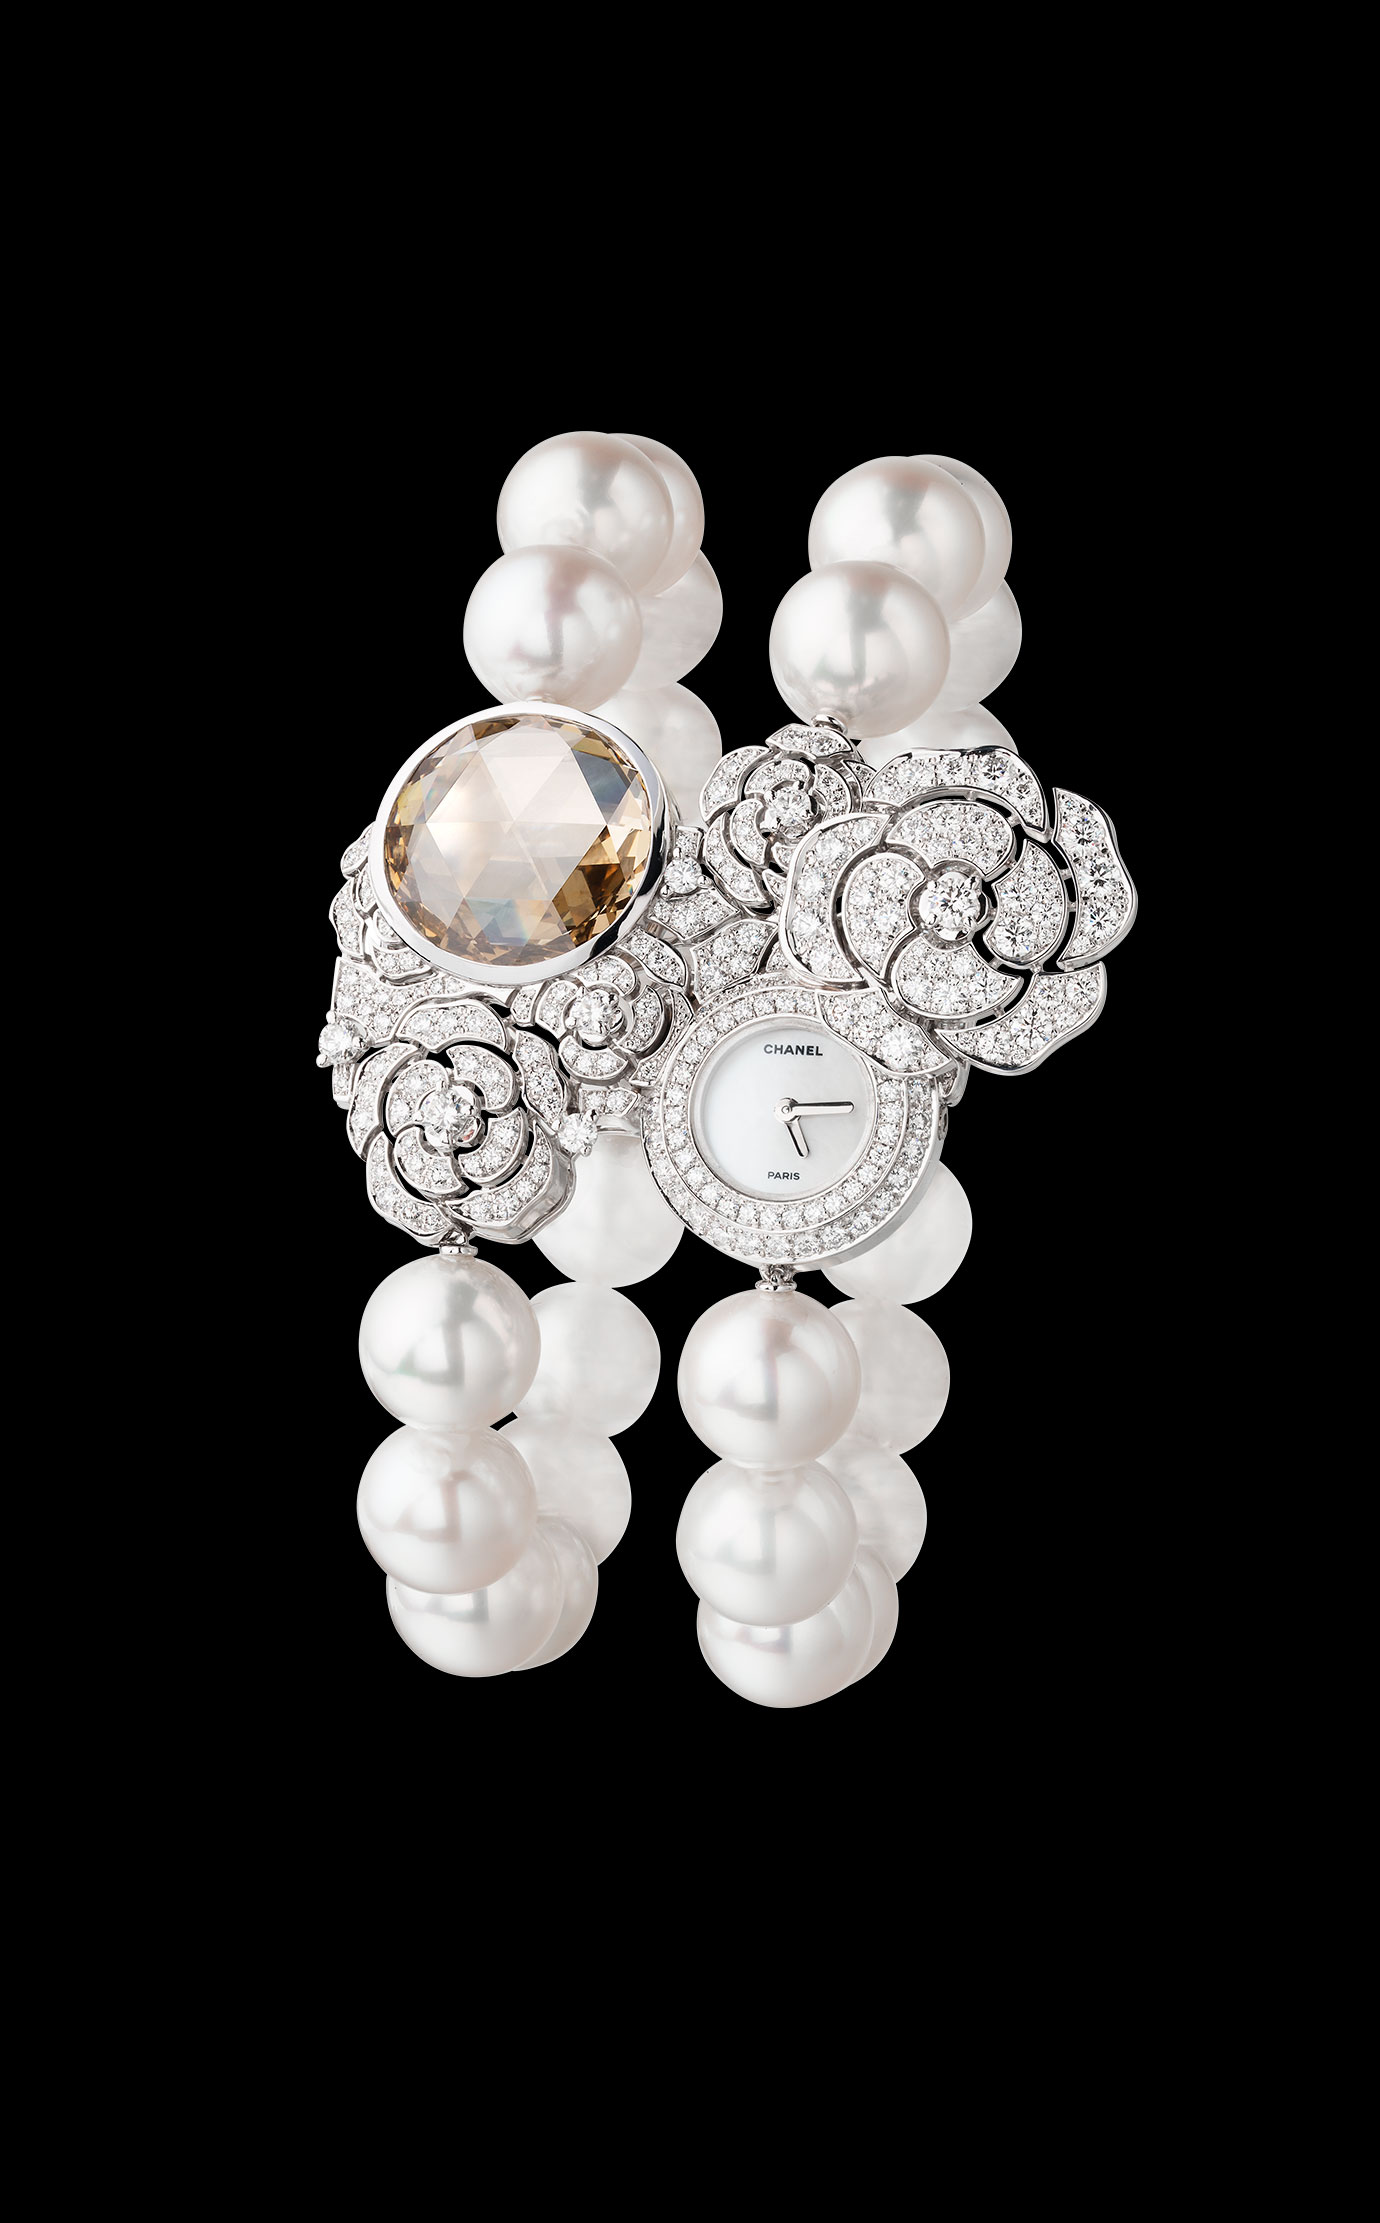 """""""Camélia"""" Watch. In the center of this pearl sautoir, which can also be worn as a bracelet, there is a watch dial concealed behind a bouquet of camellias. 18K white gold set with 503 diamonds, including one 10-carat Fancy Brown Yellow diamond. locale_link - Bracelet"""